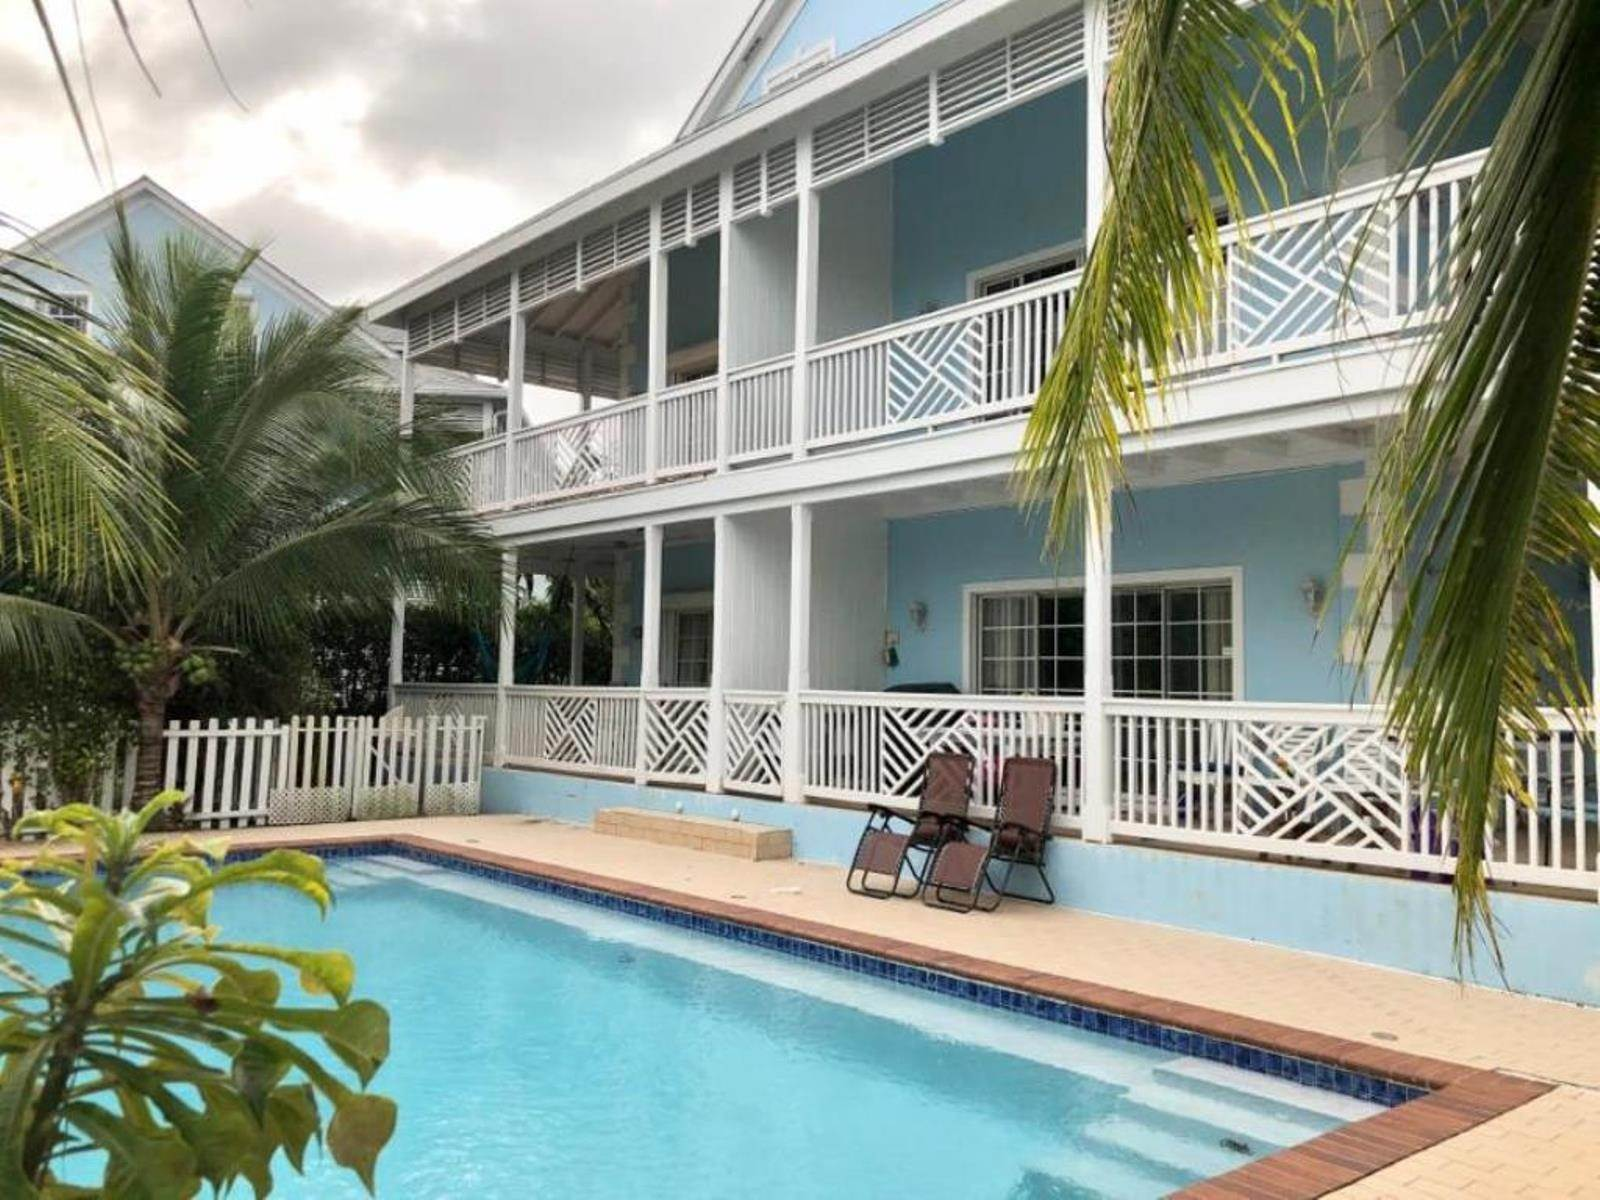 Co-op / Condo for Rent at Canal front Home at Sandyport for Rent with a Generator! Sandyport, Cable Beach, Nassau And Paradise Island Bahamas